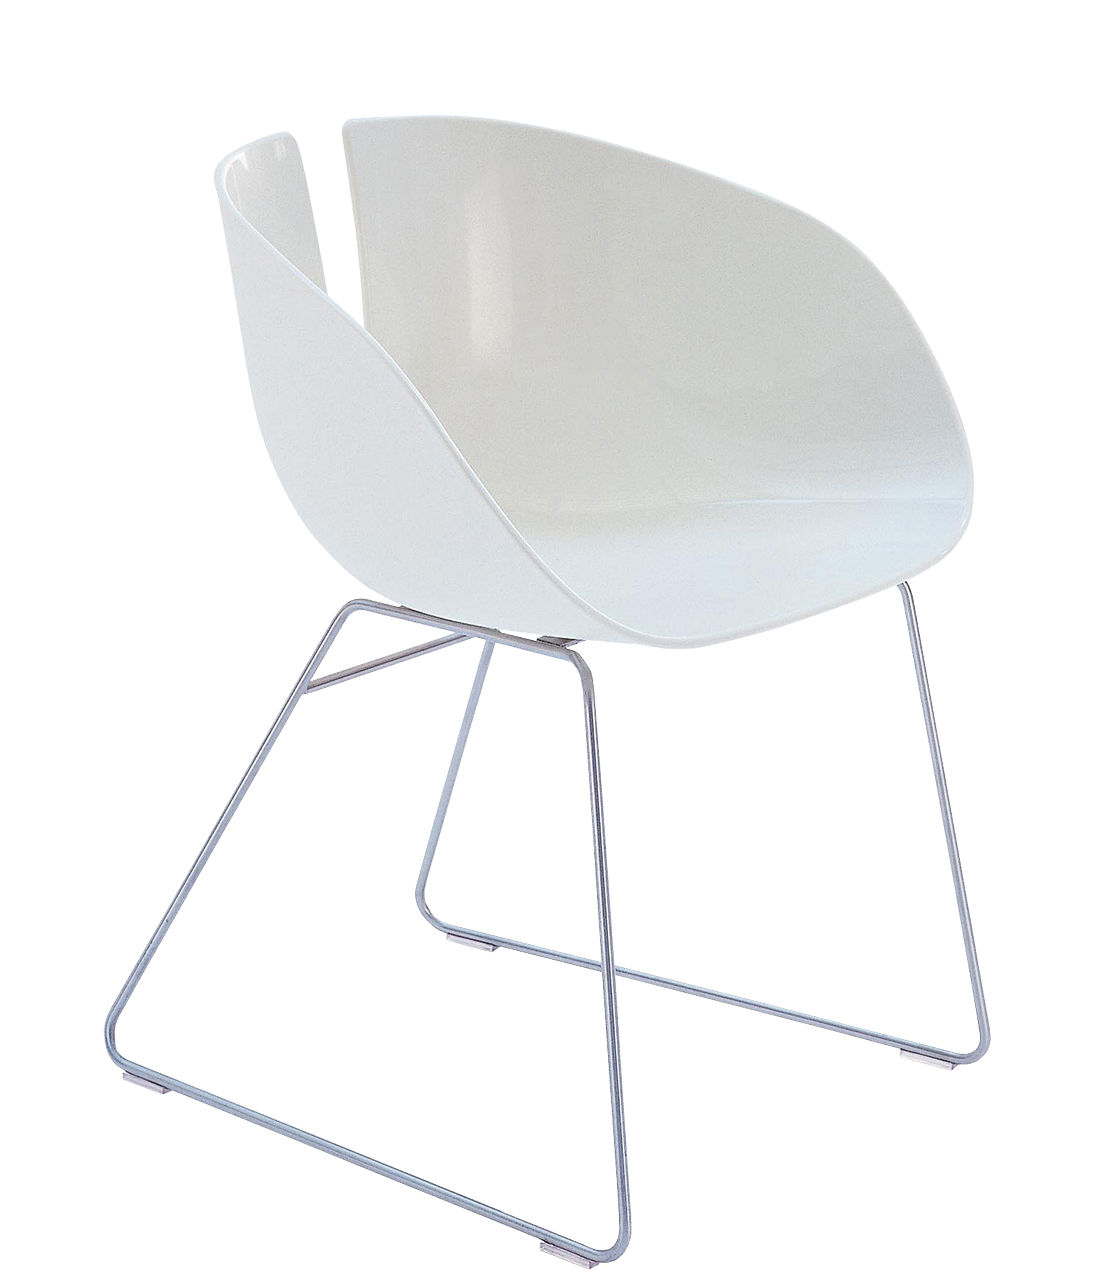 Furniture - Chairs - Fjord H Chair by Moroso - White / Steel - Composite plastic, Satin stainless steel